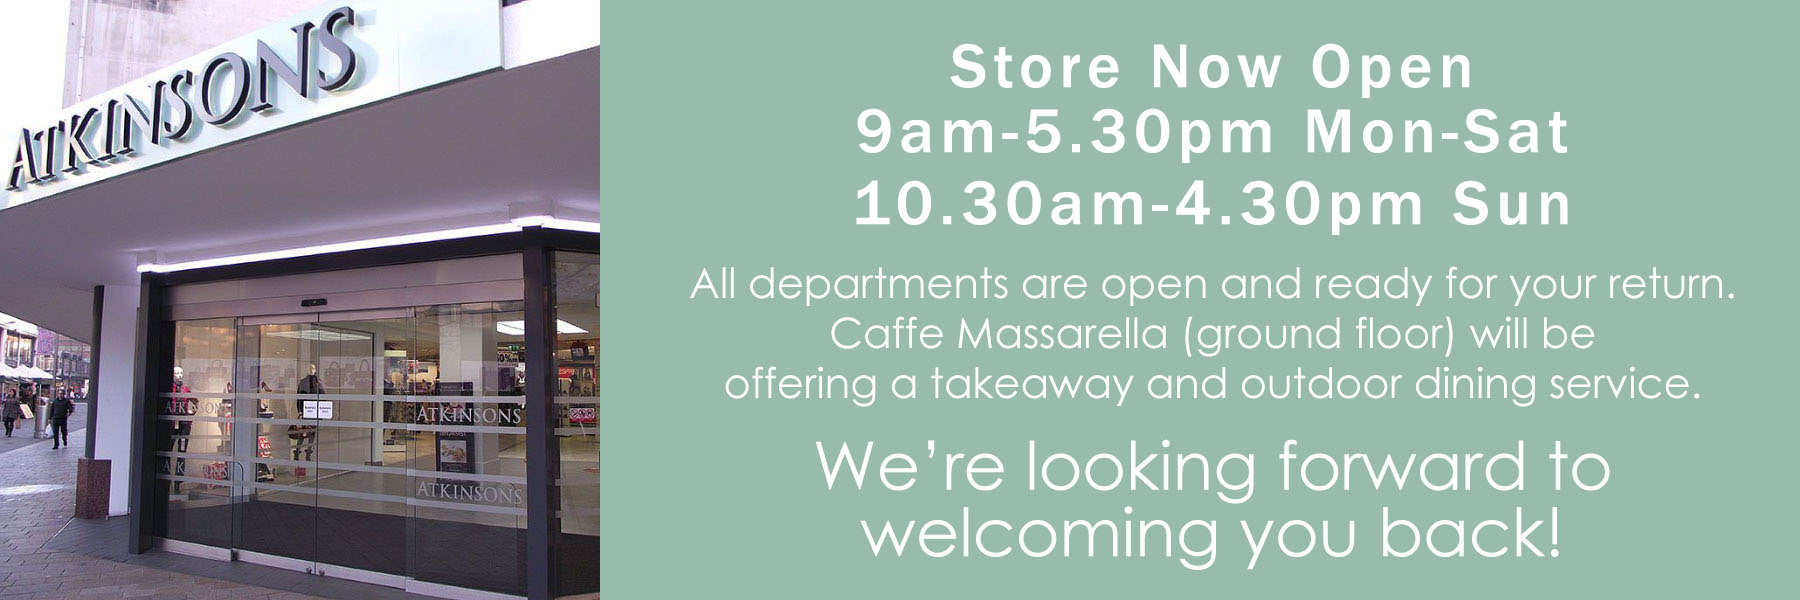 Store Now Open